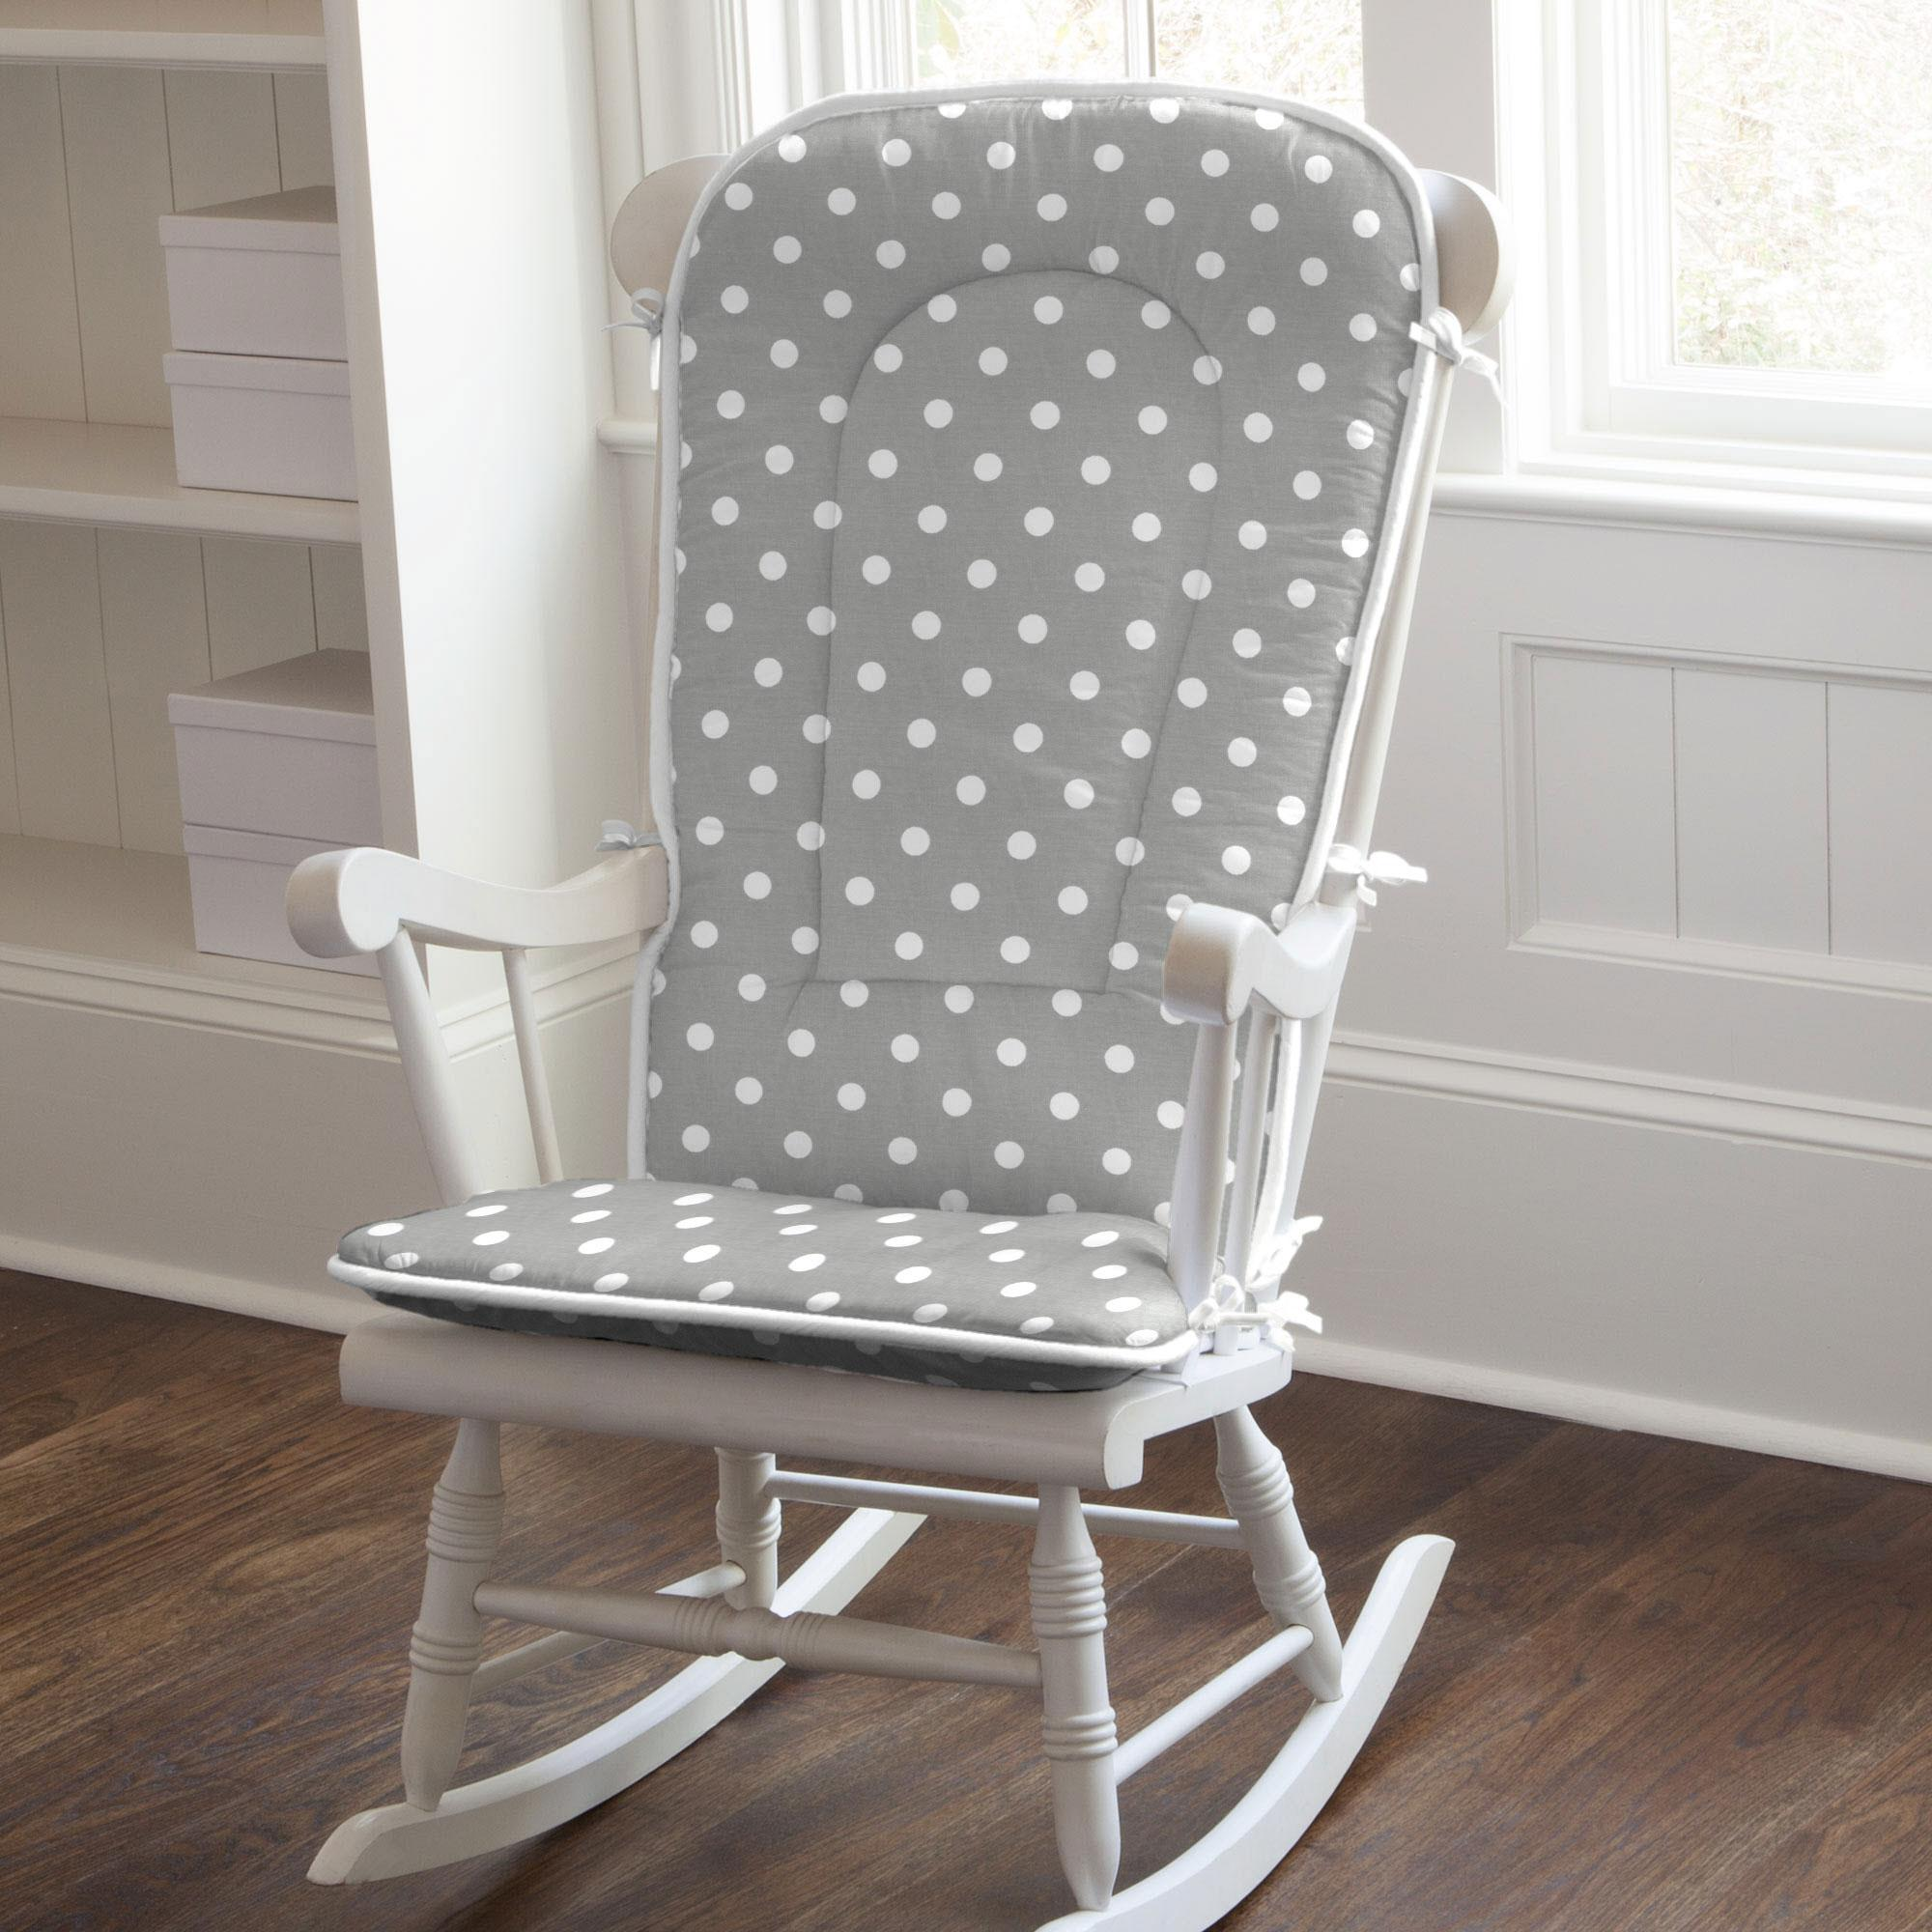 Rocking Chair Cushions For Added Comfort of Rocking